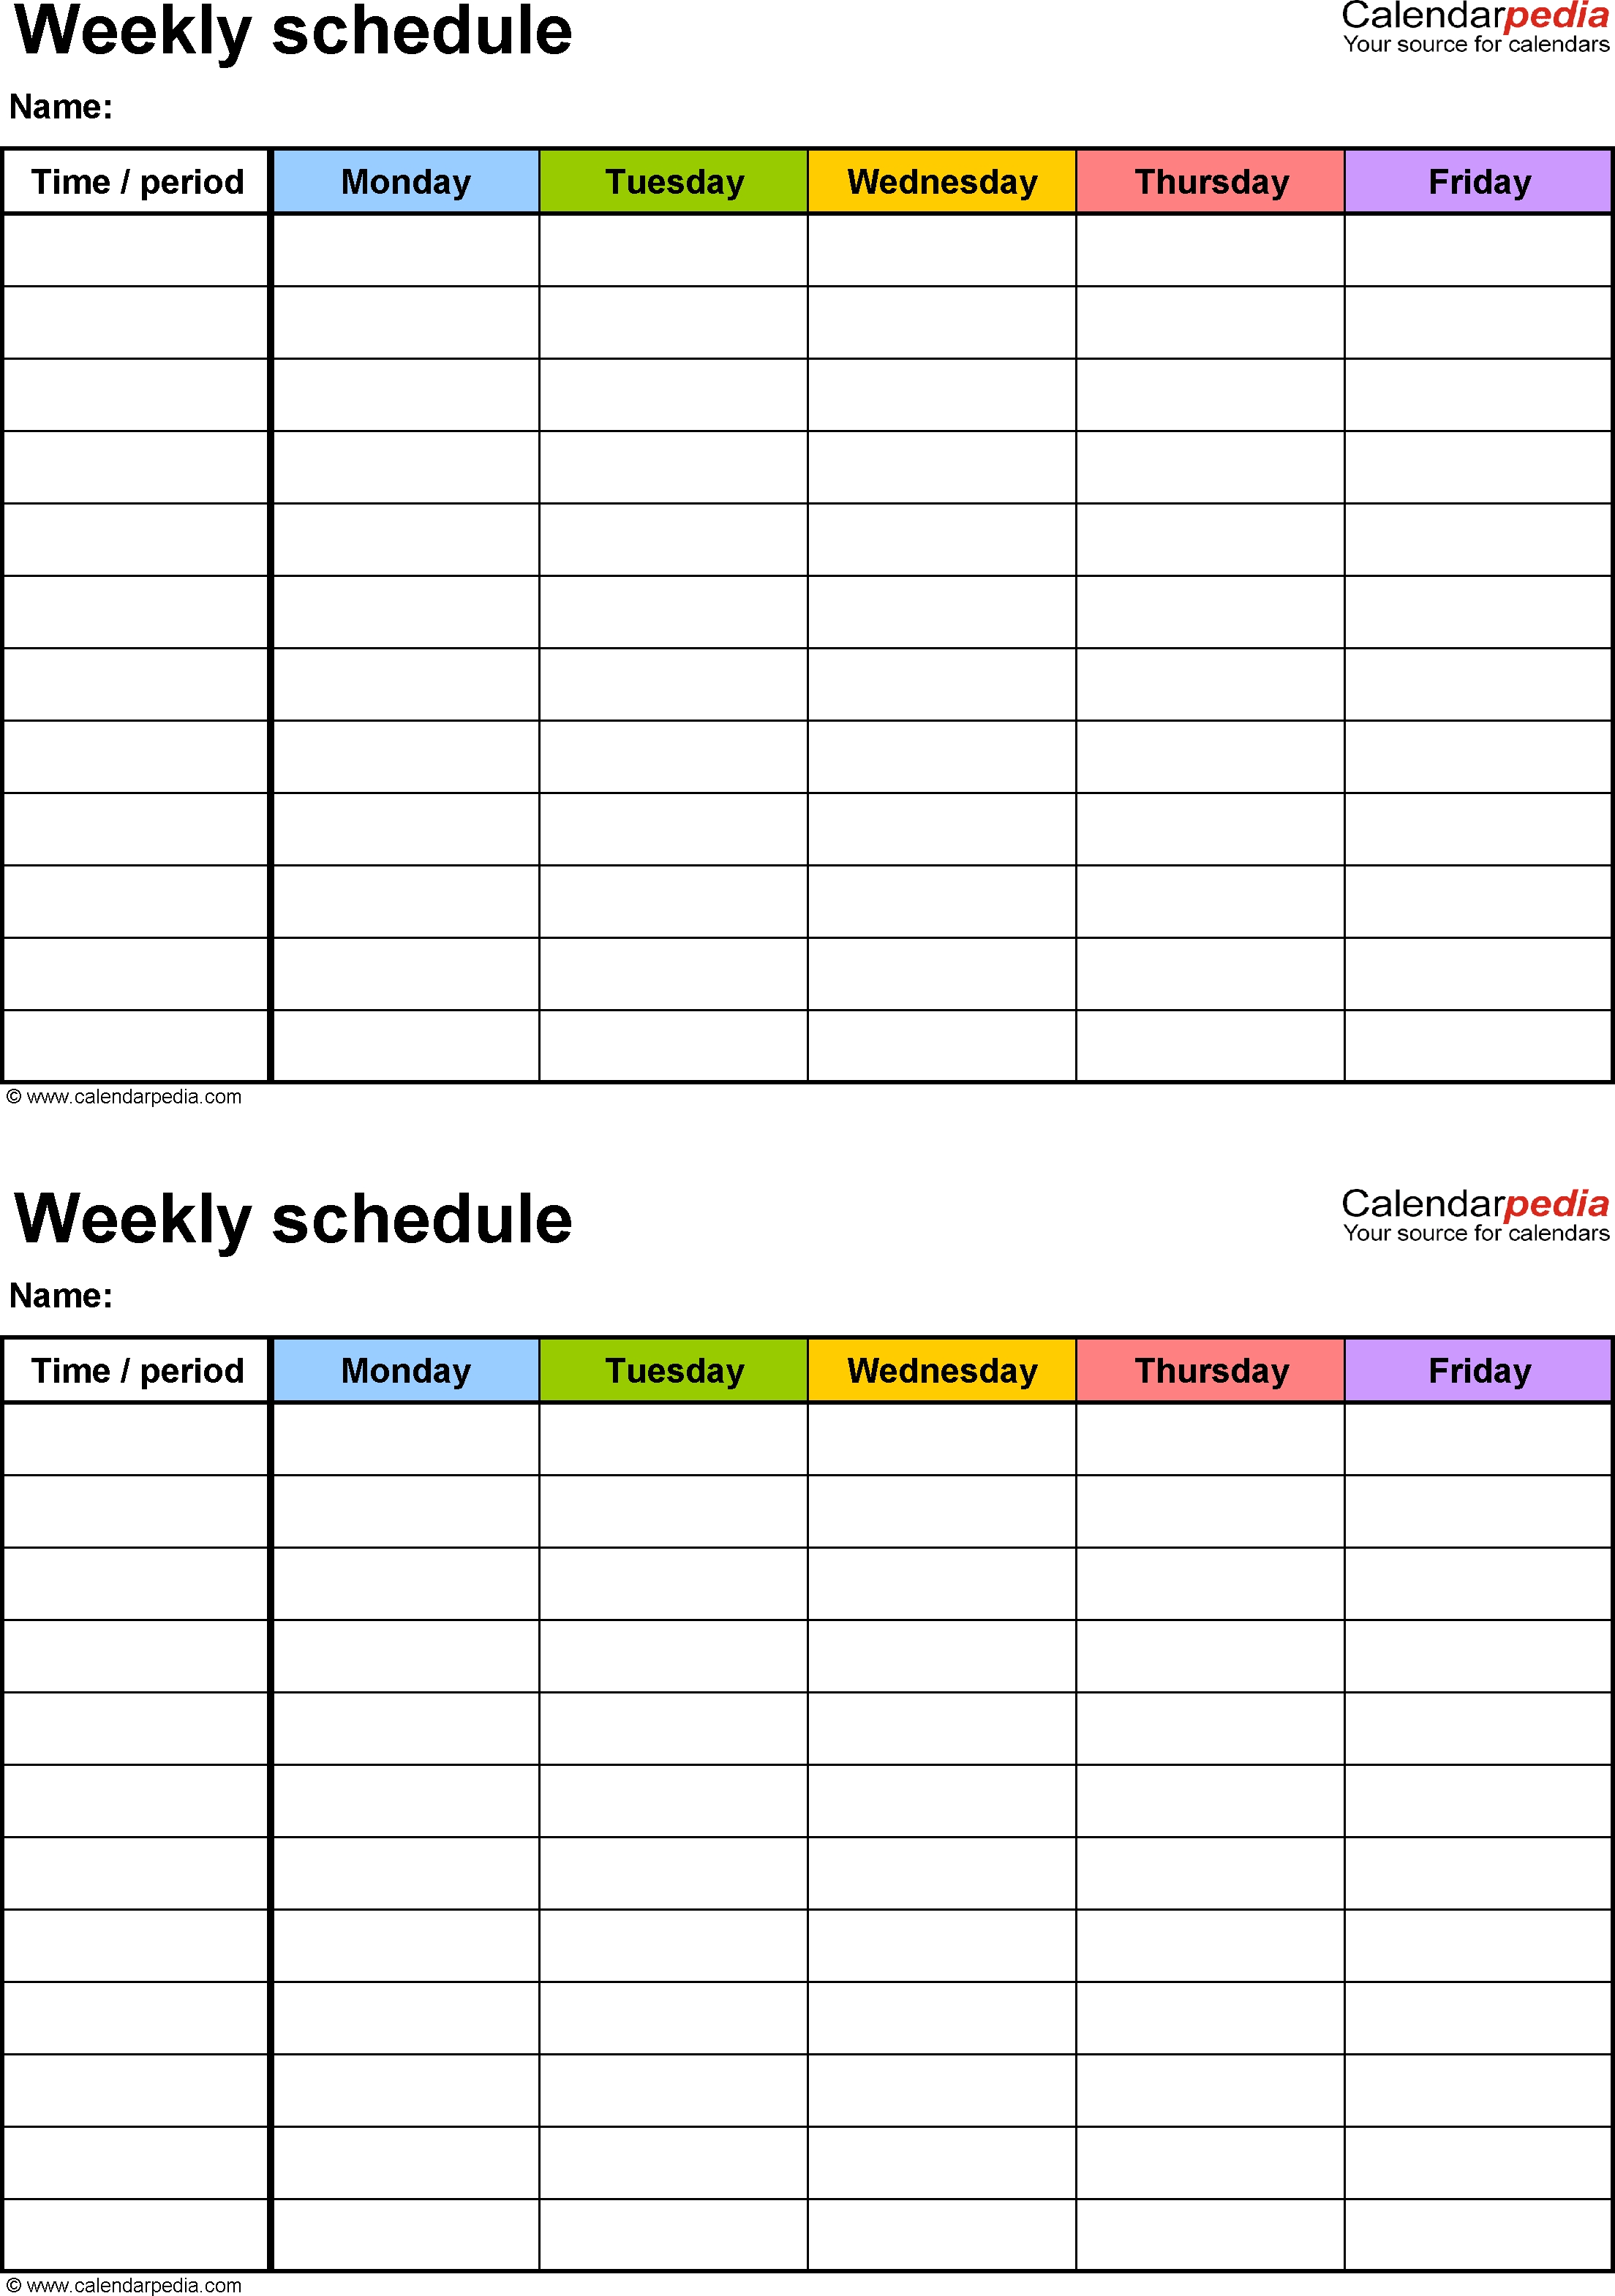 Free Weekly Schedule Templates For Word - 18 Templates-Monday To Friday Monthly Calendar Template